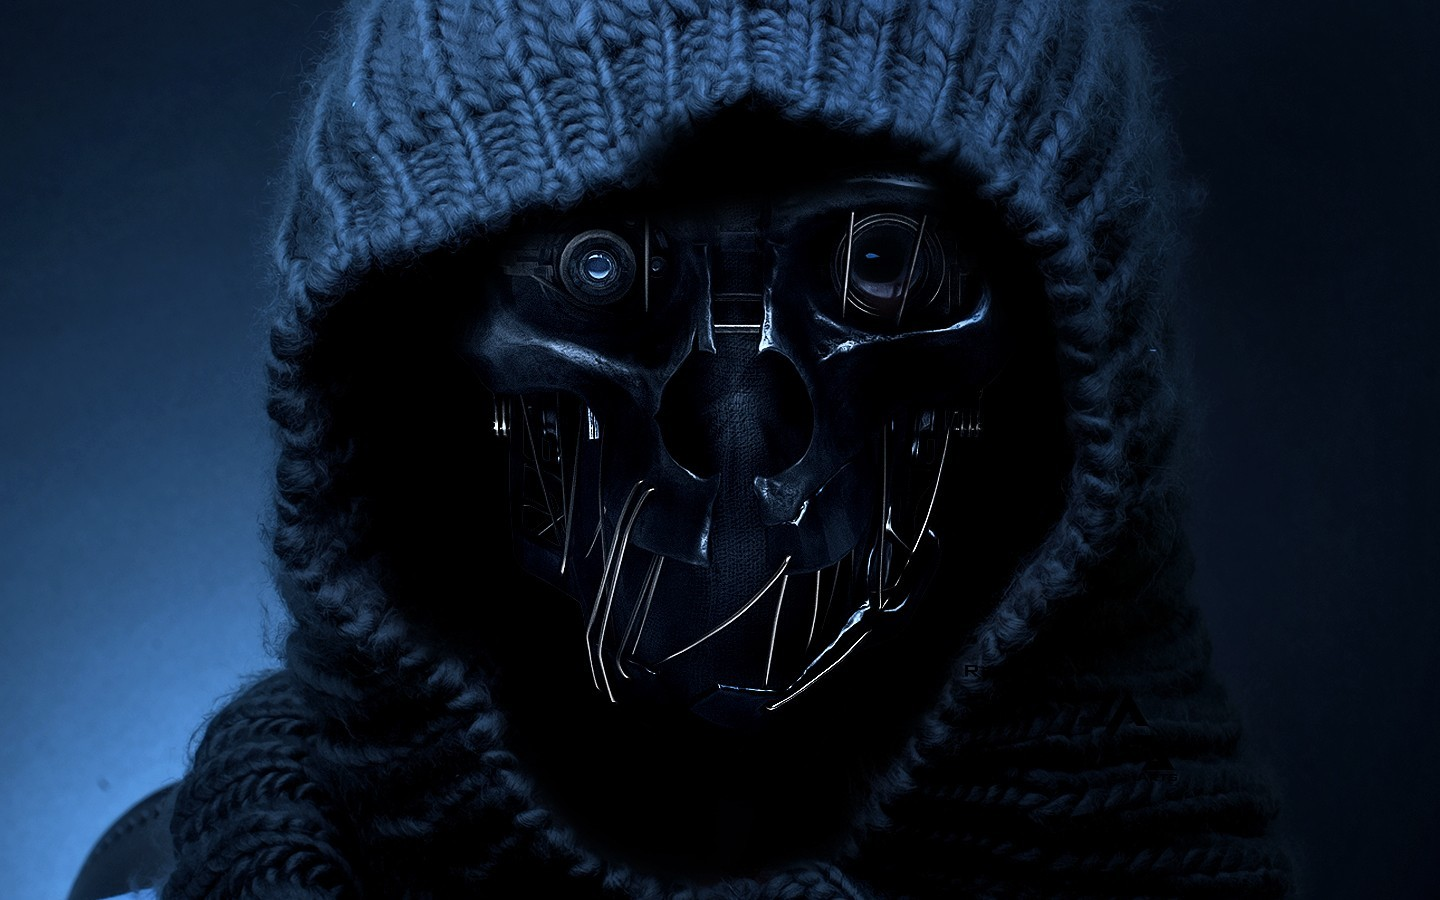 Gas Mask Wallpaper For Iphone Metal Masks Wool Apocalyptic Dishonored Hood Wallpaper